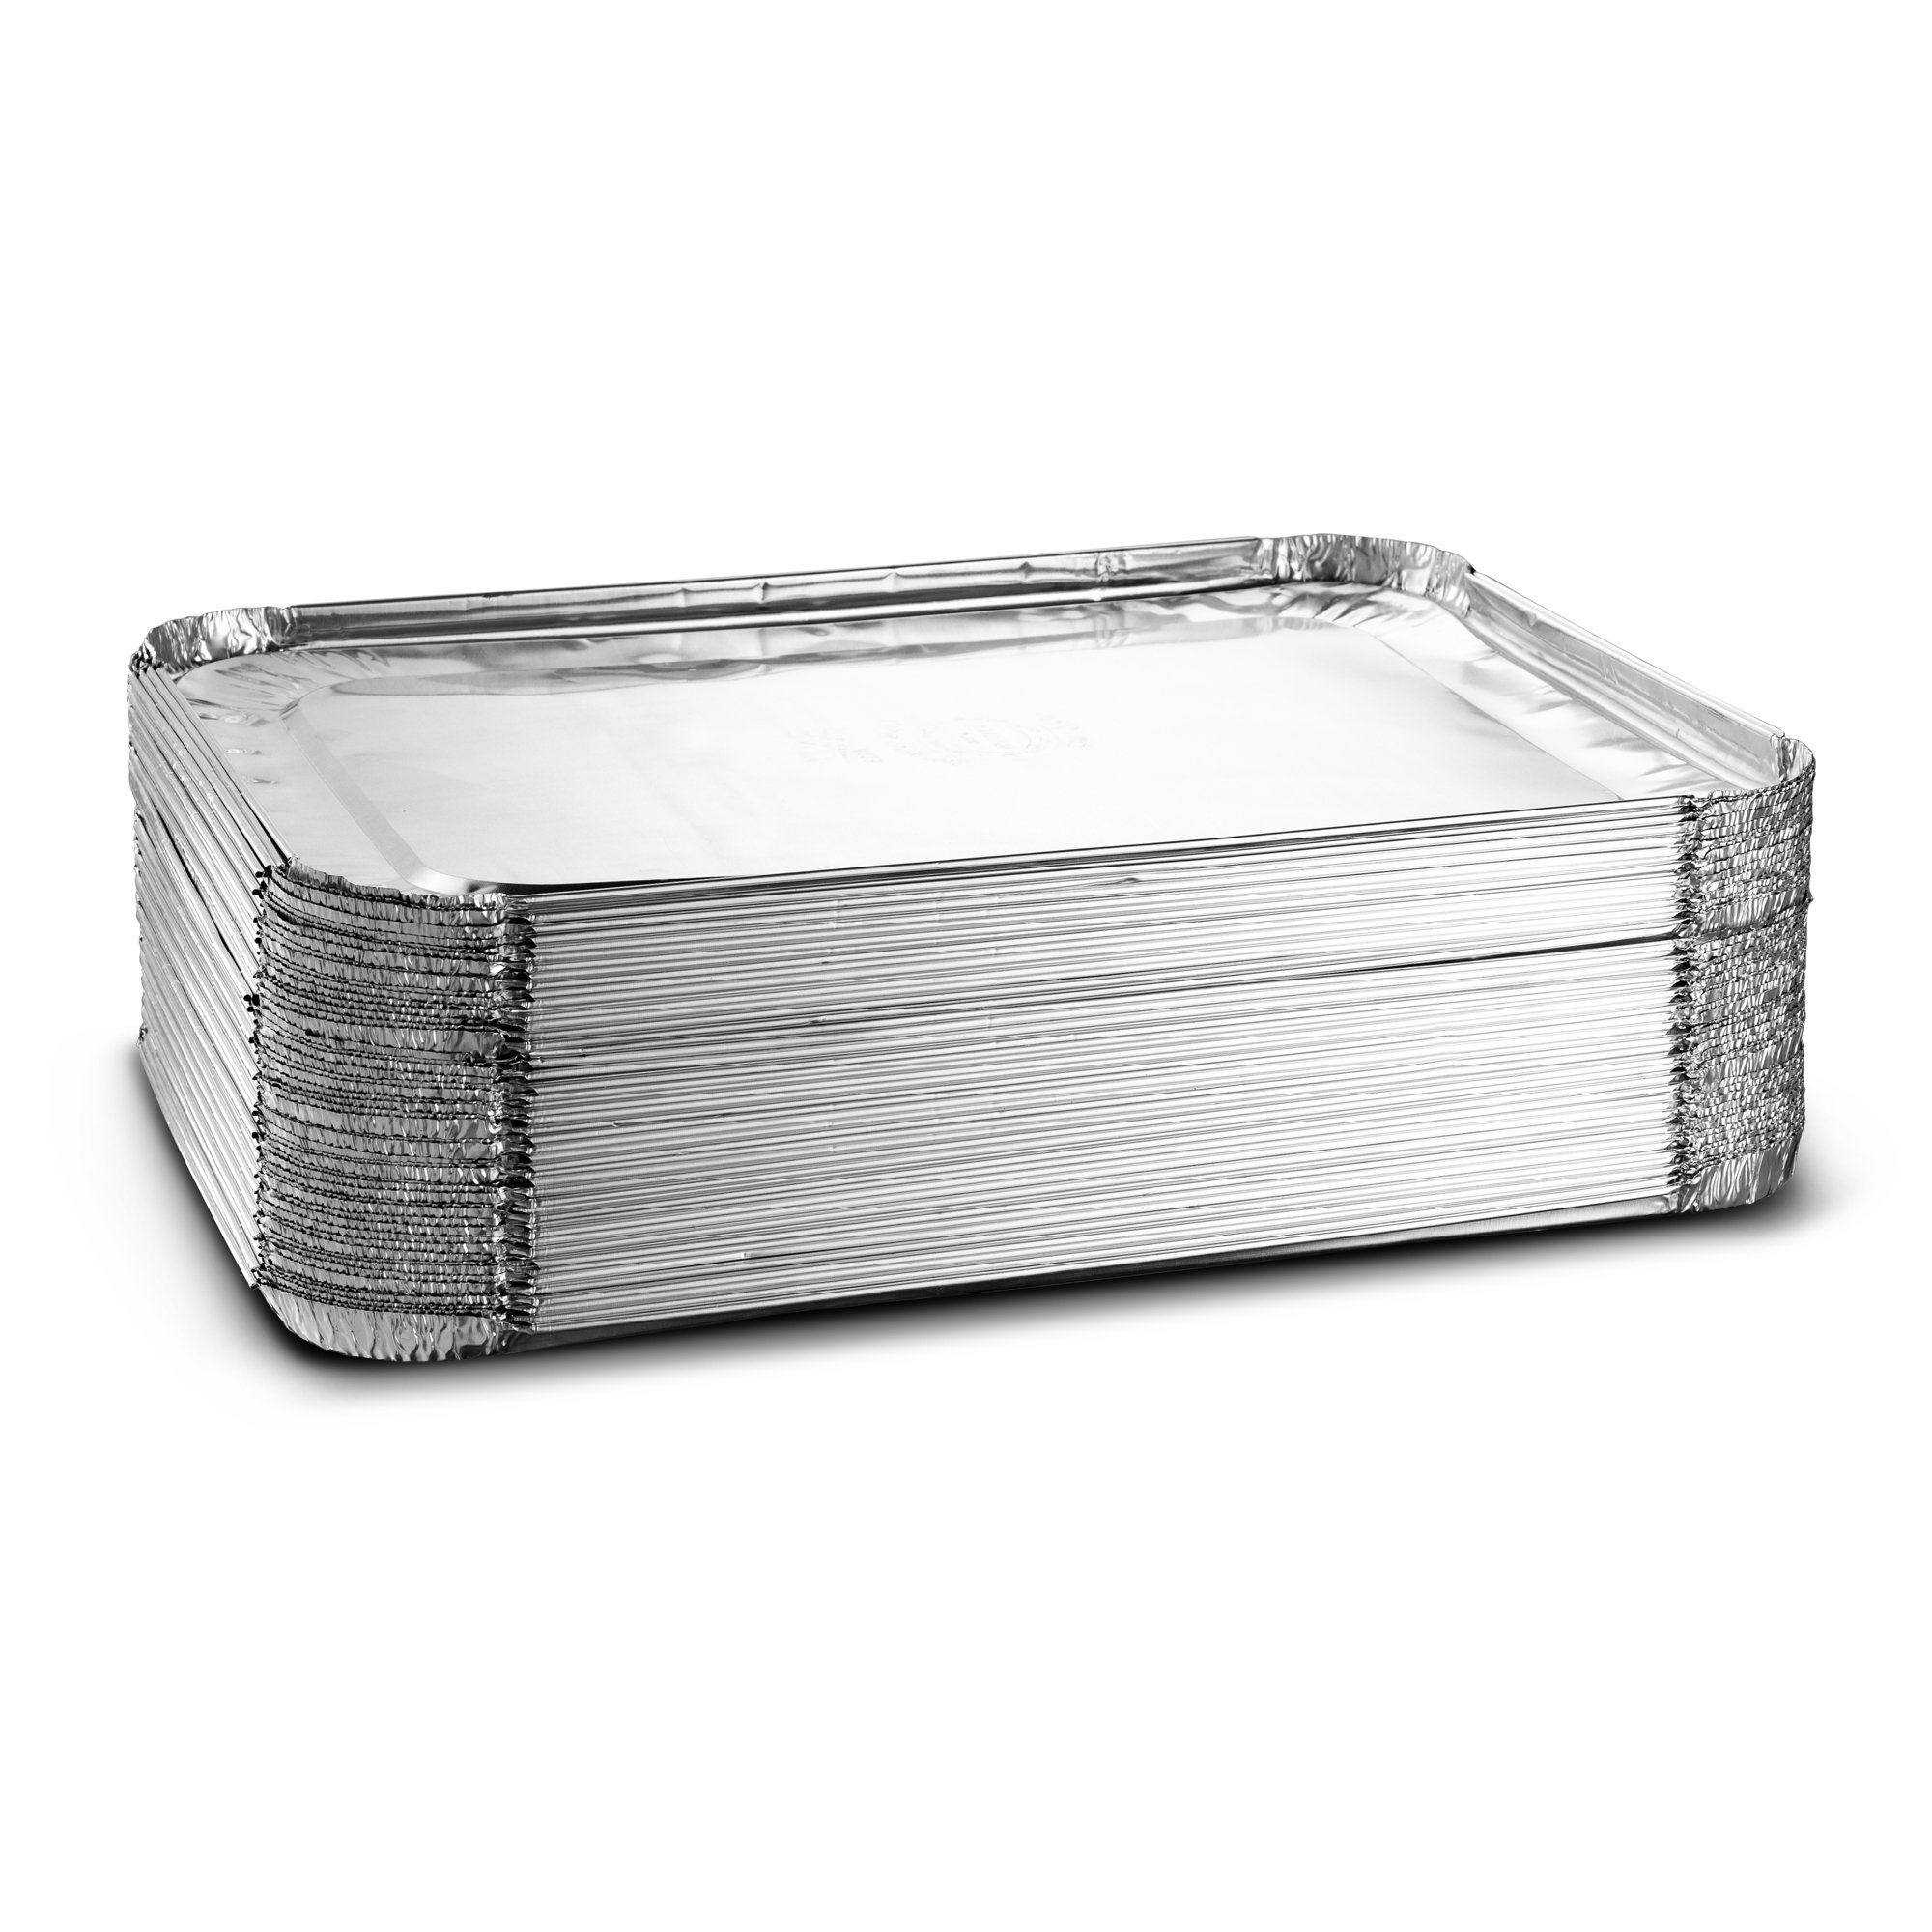 Aluminum Half Size Deep Steam Table Disposable Foil Pan 9X13 Pack of 50 with Lids Safe for Use inOven,Freezer,Cooking, Baking,& Storage